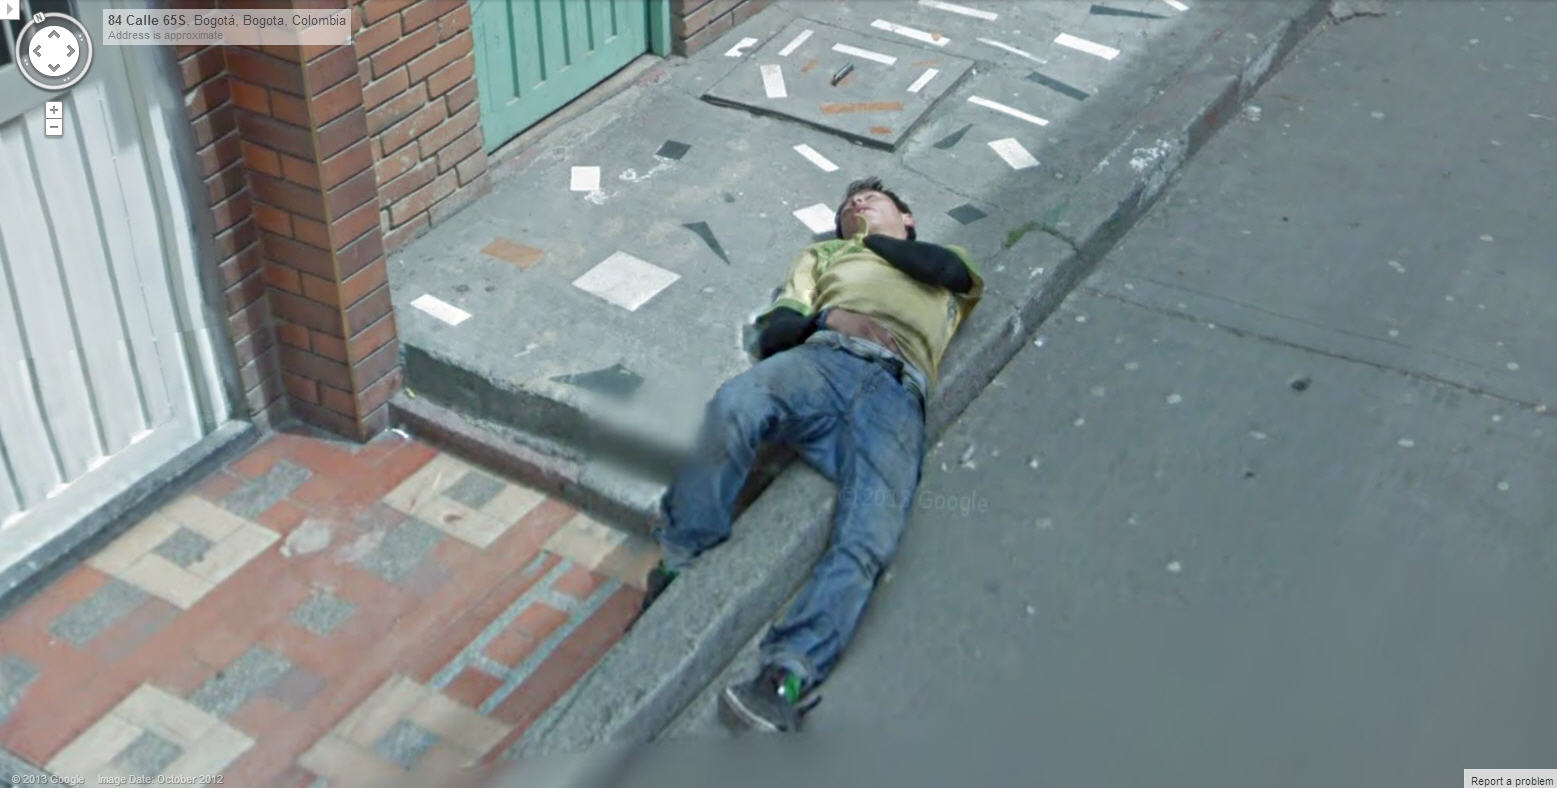 Is this Colombian Man Dead or Sleeping? | Google Street View World Dead In Google Maps on